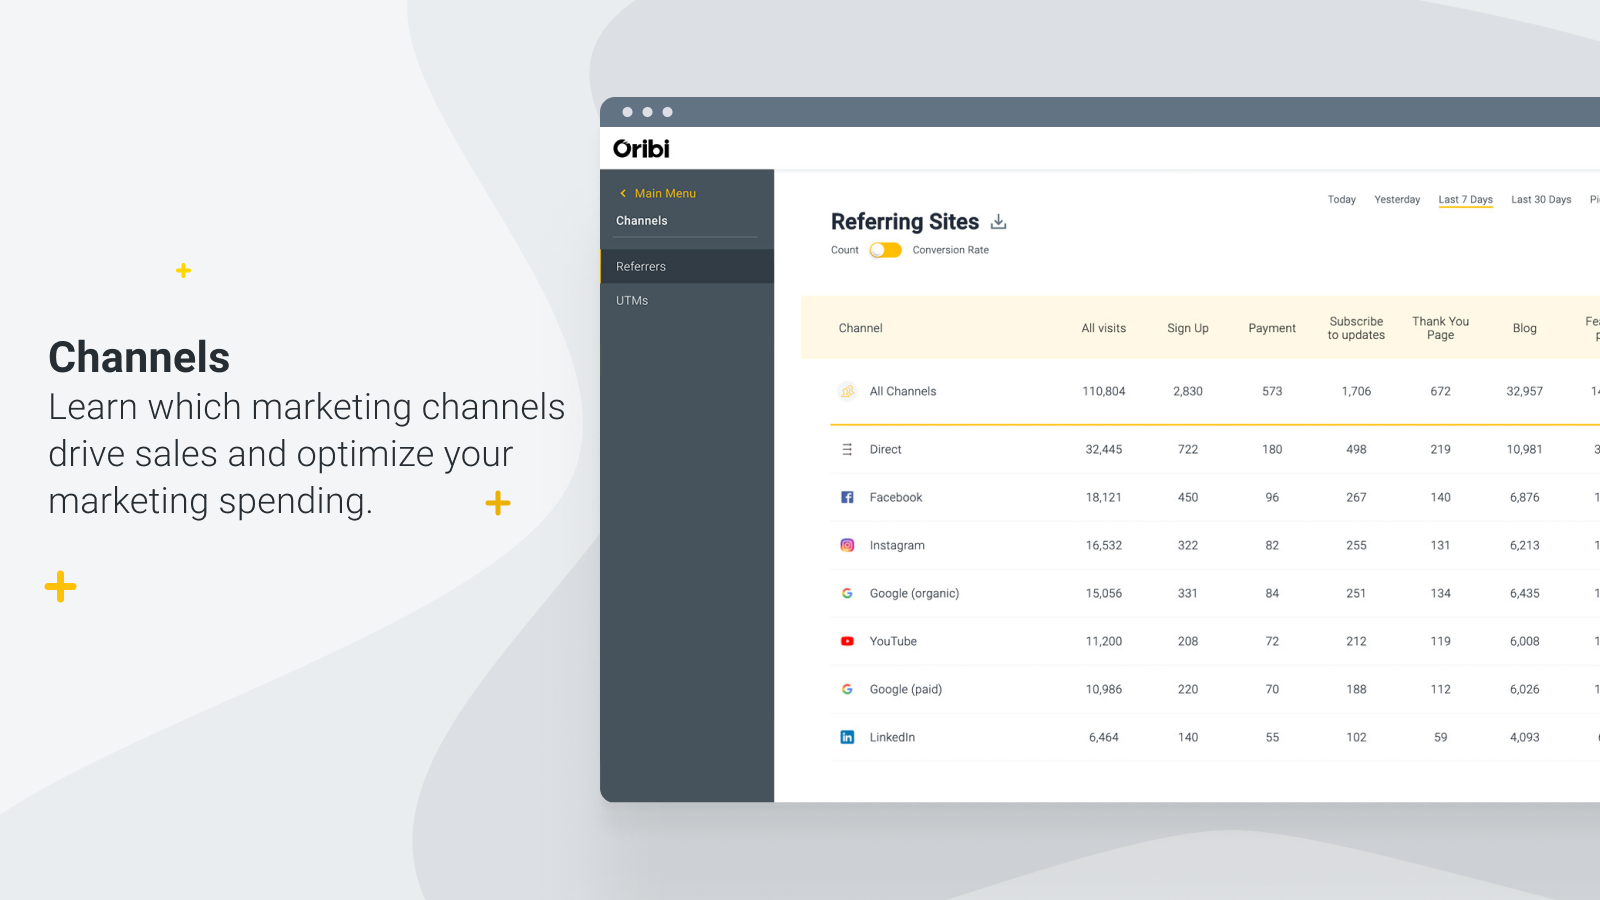 Learn which channels drive sales and get more from your budget